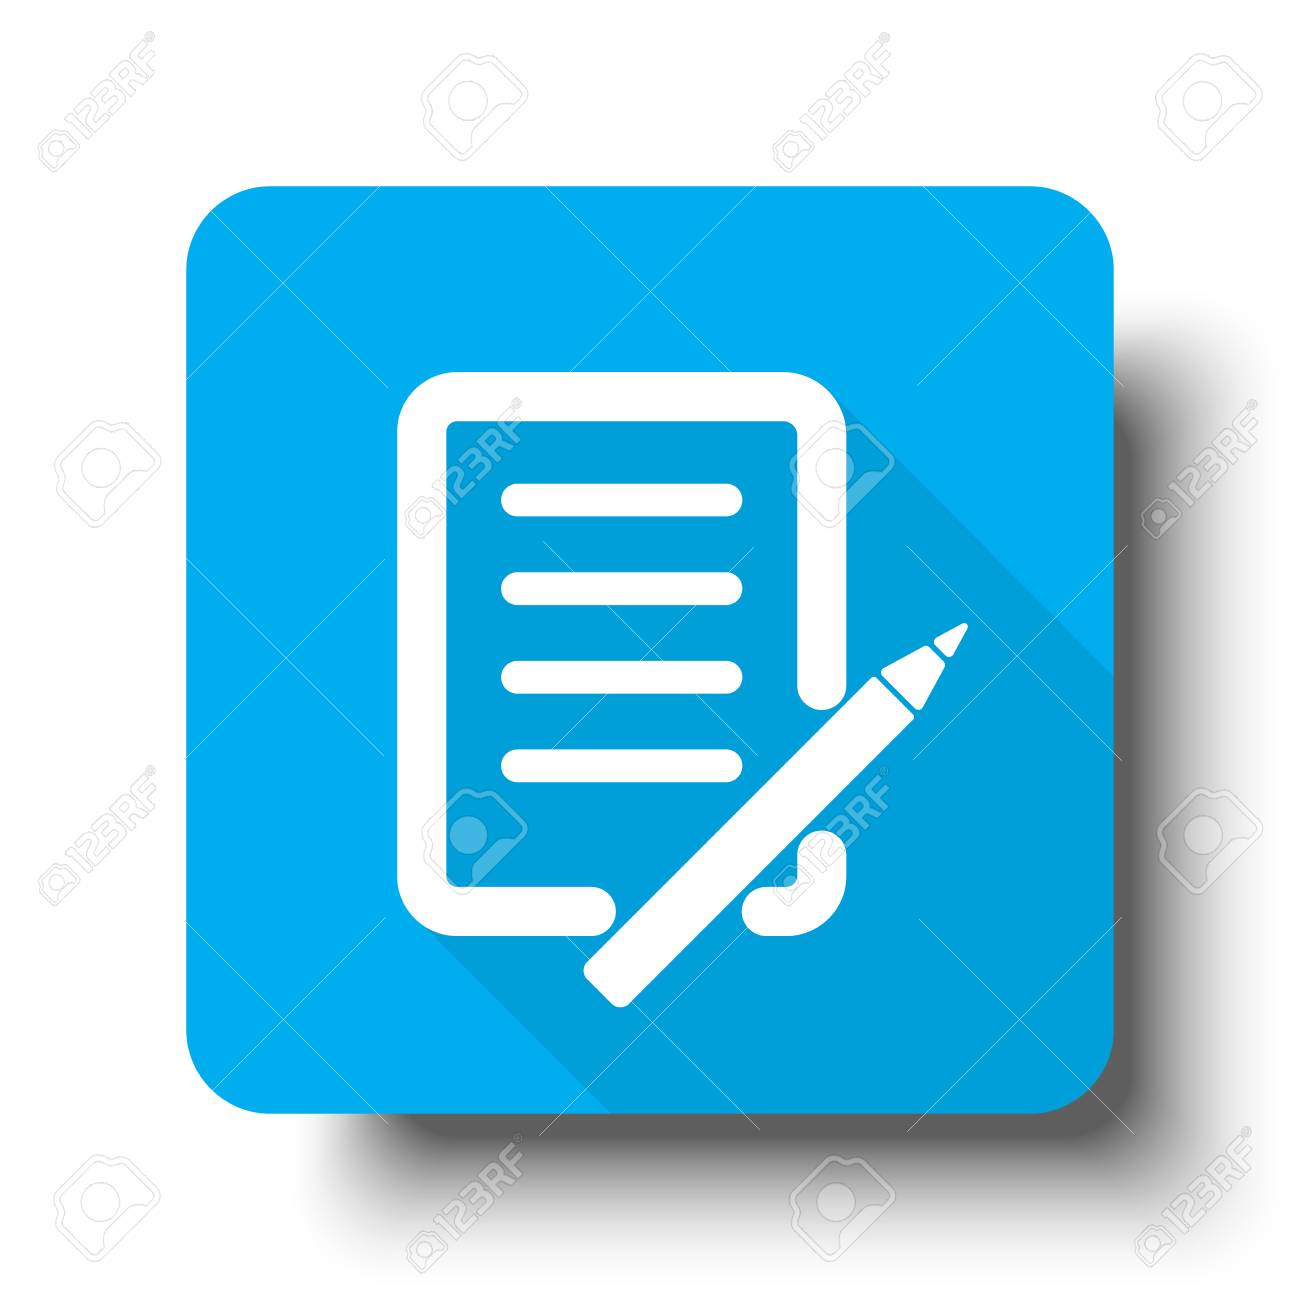 White Pen And Paper icon on blue web button